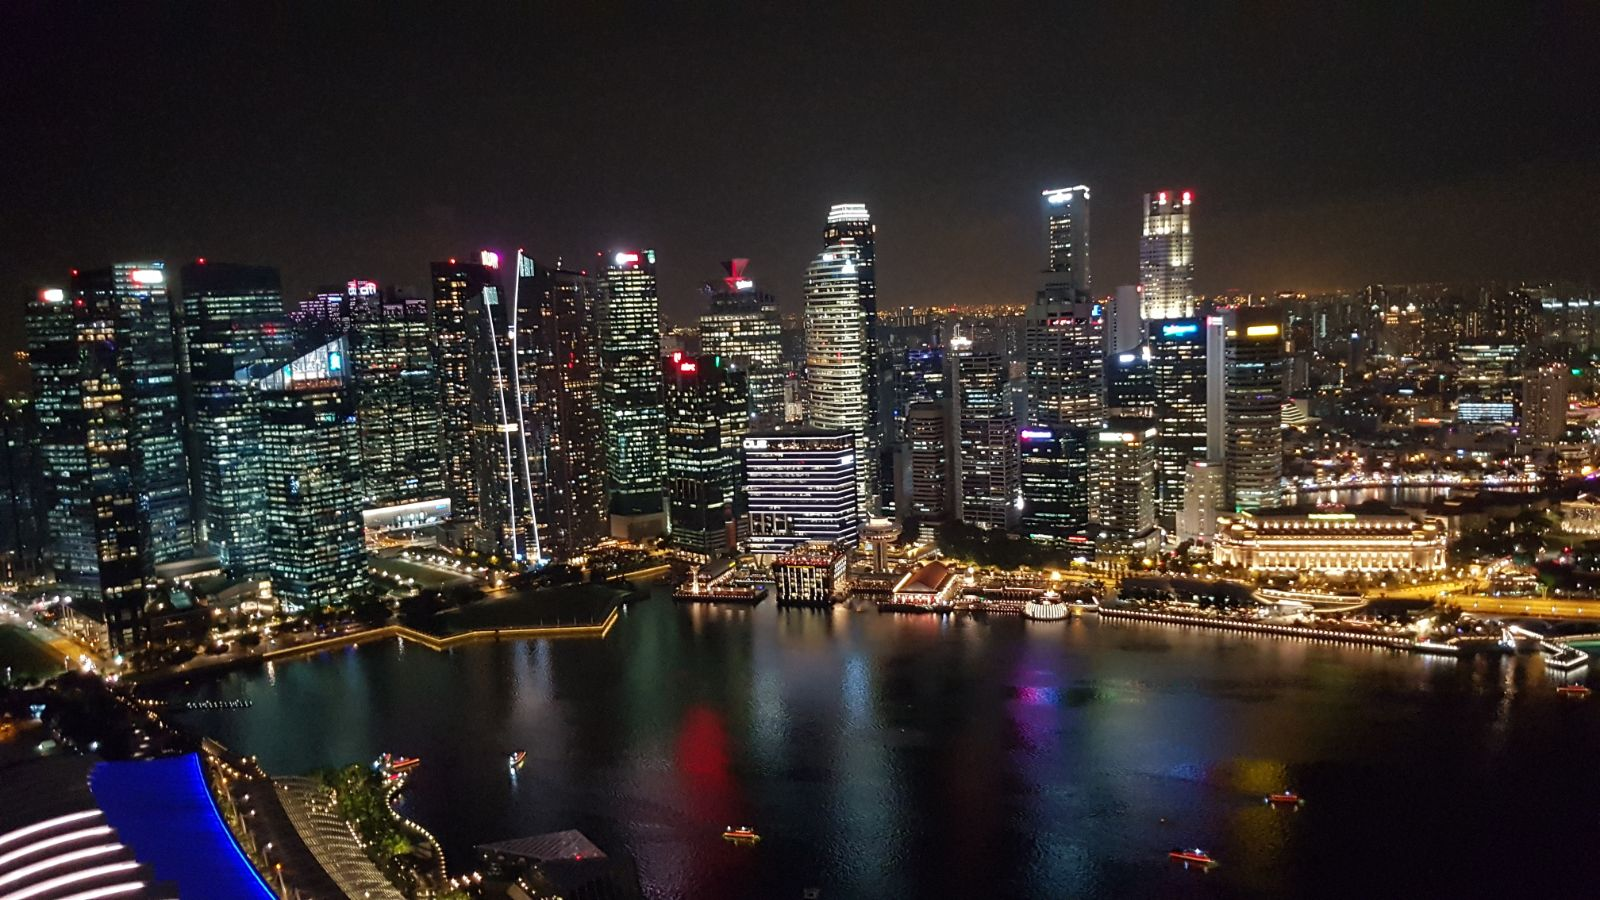 SkyPark observation deck Singapore